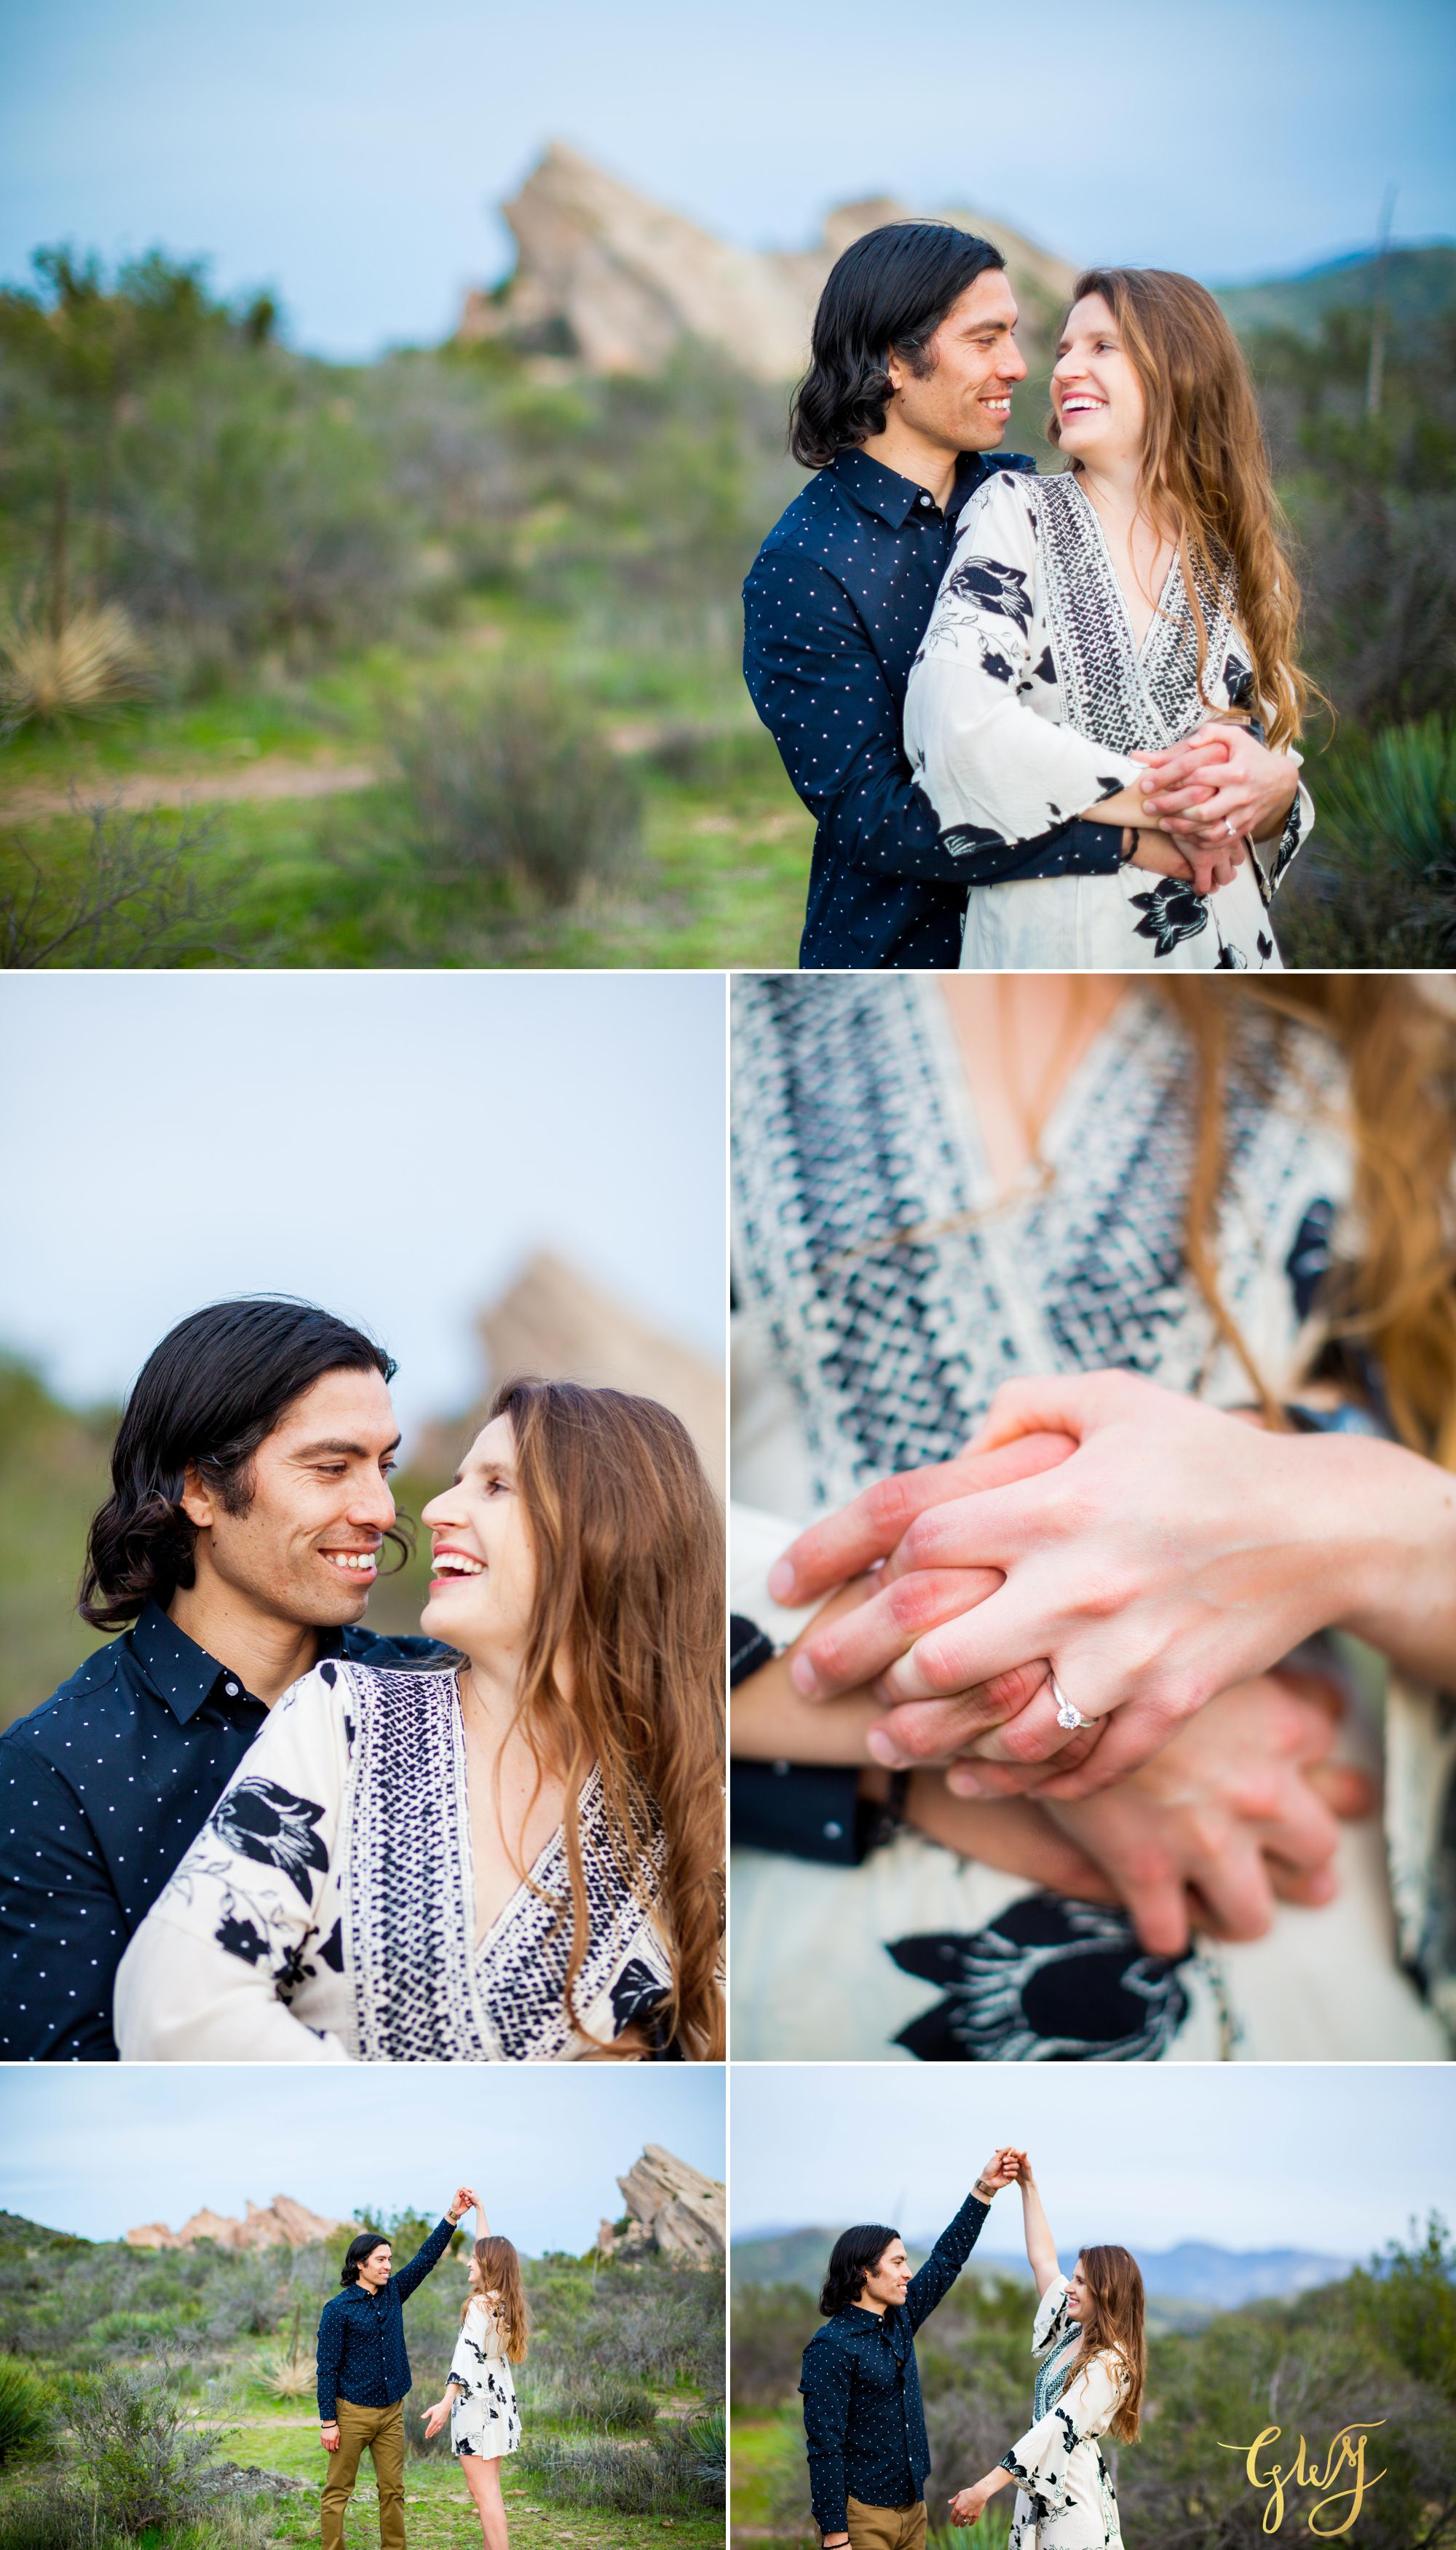 Jose + Sarah Vasquez Rocks Hike at Sunset Adventurous Engagement by Glass Woods Media 17.jpg